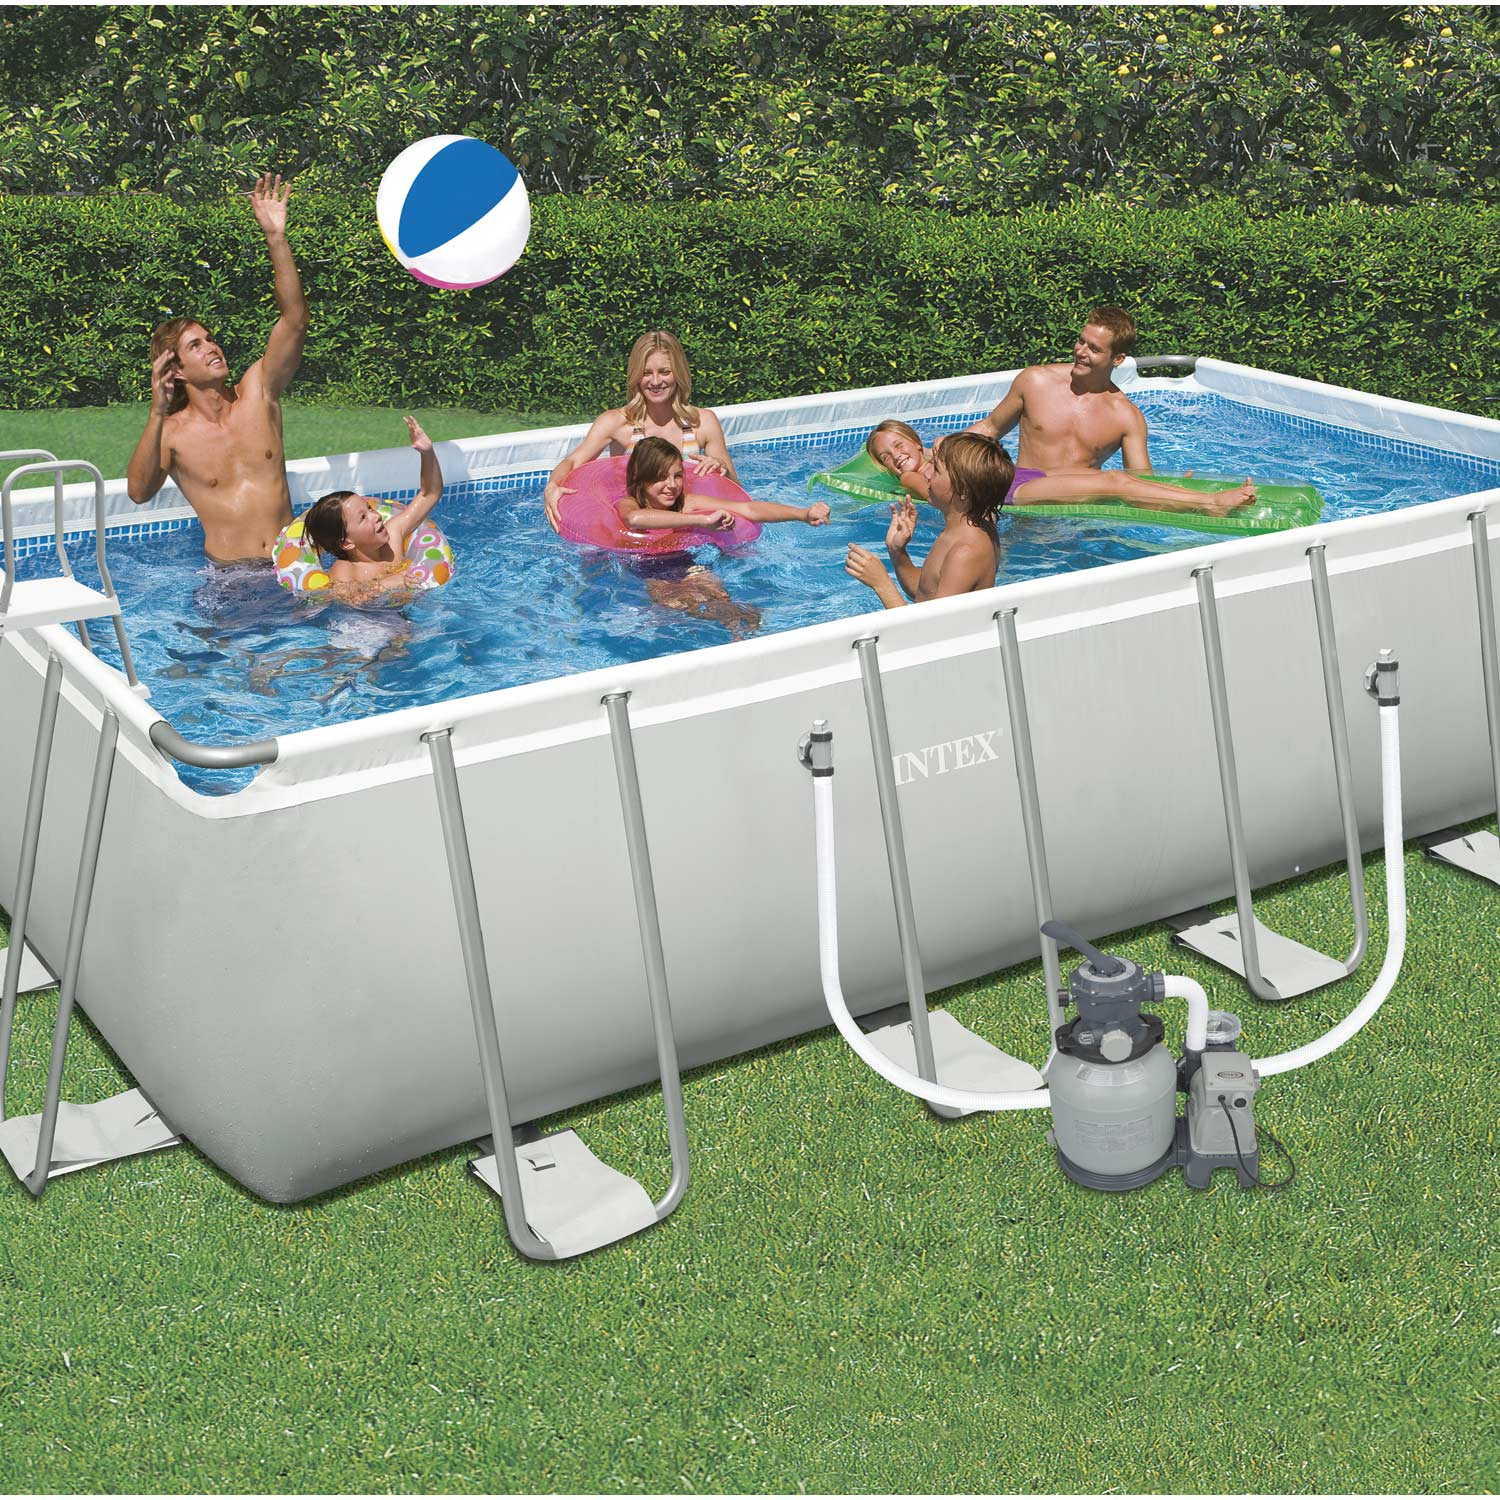 Piscine hors sol autoportante tubulaire ultra silver intex for Piscine hors sol entretien